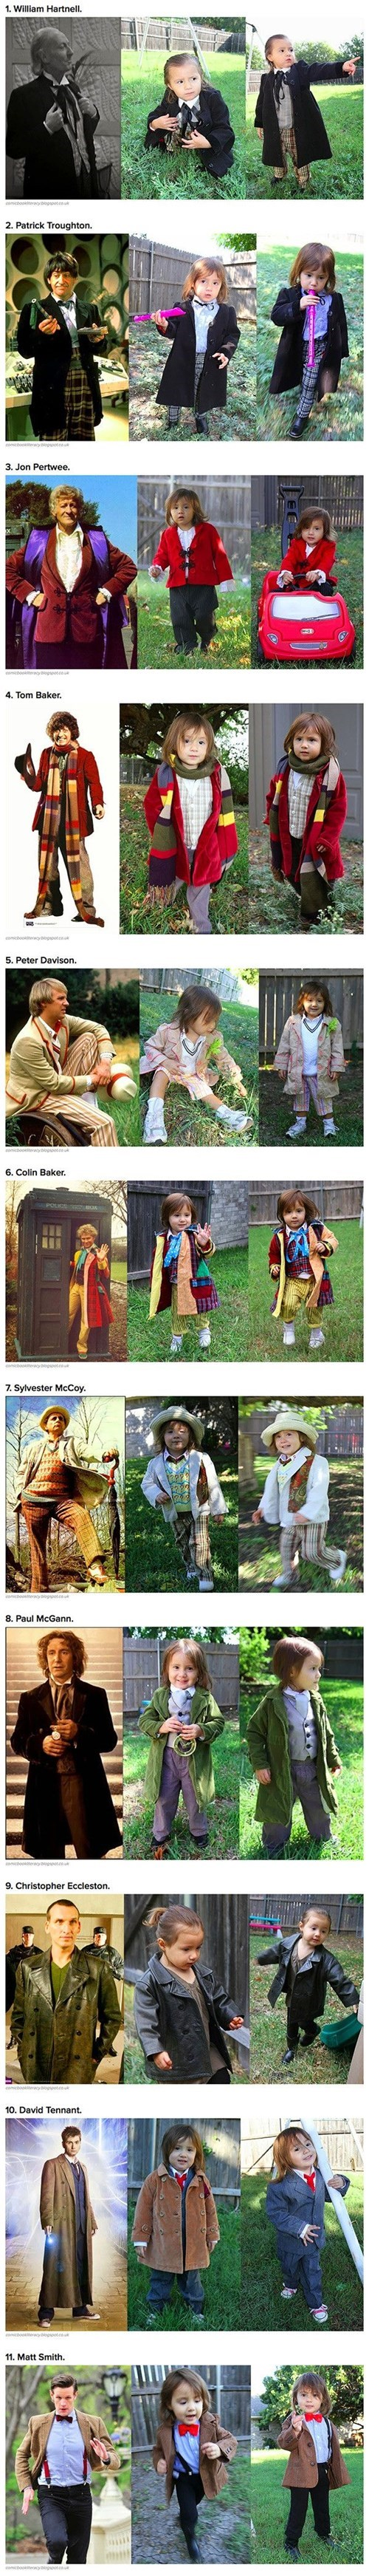 cosplay,kids,the doctor,Whovian